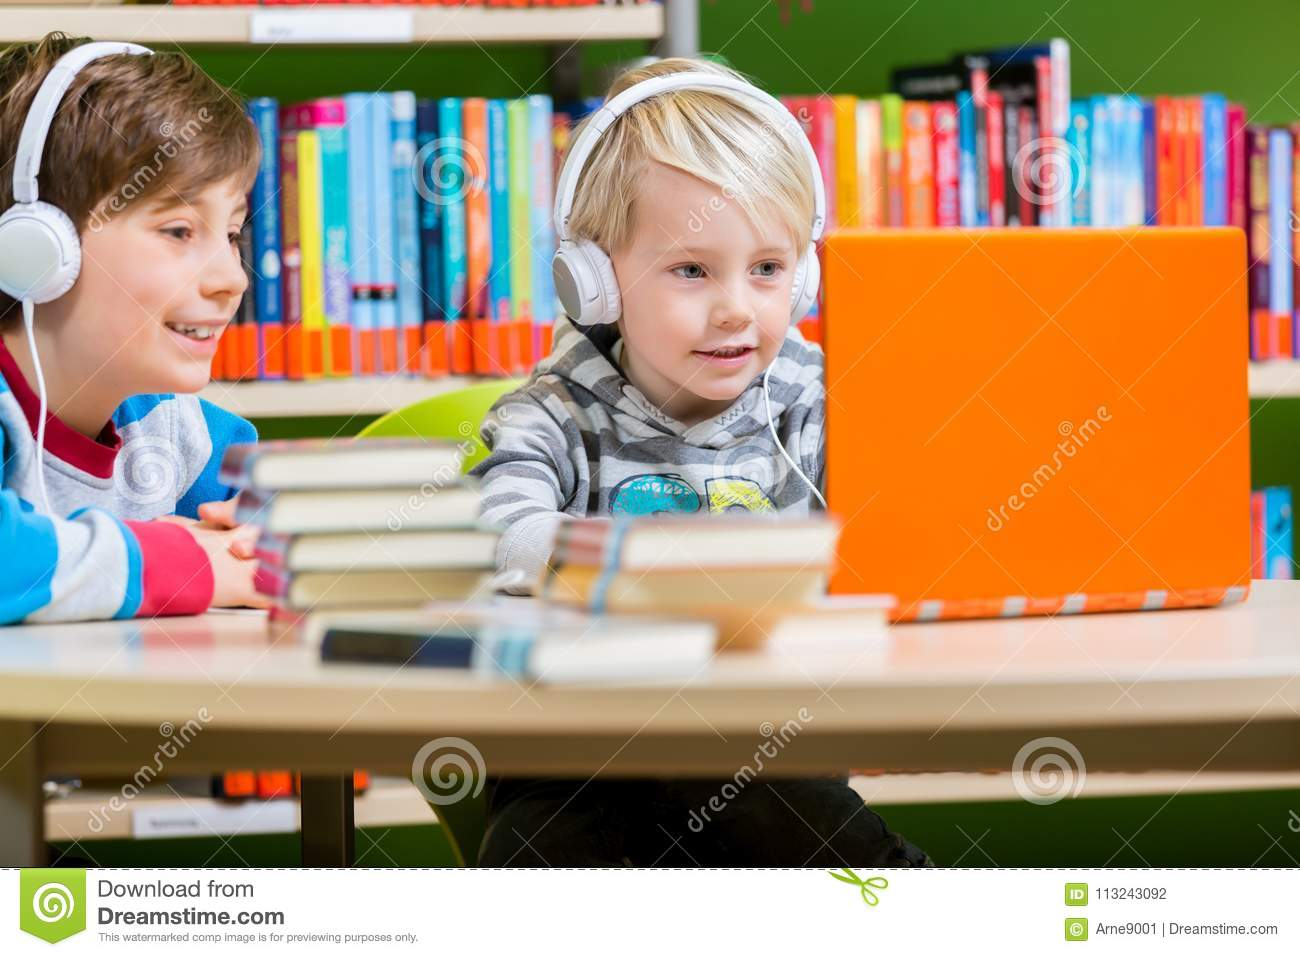 Children in a library listening to audio books